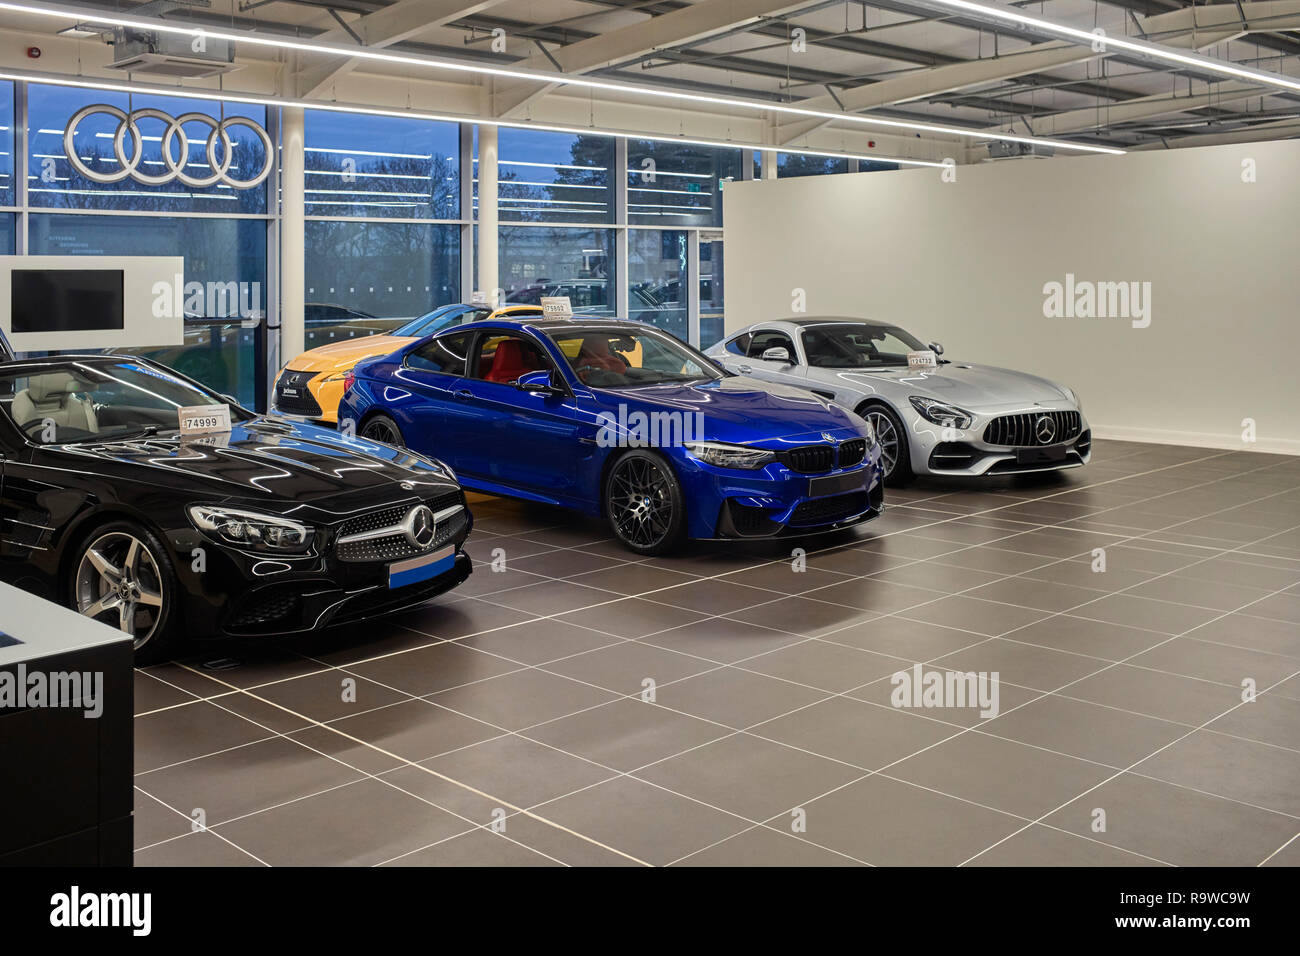 Very expensive cars on show at Jacksons car showroom in Douglas, Isle of Man Stock Photo